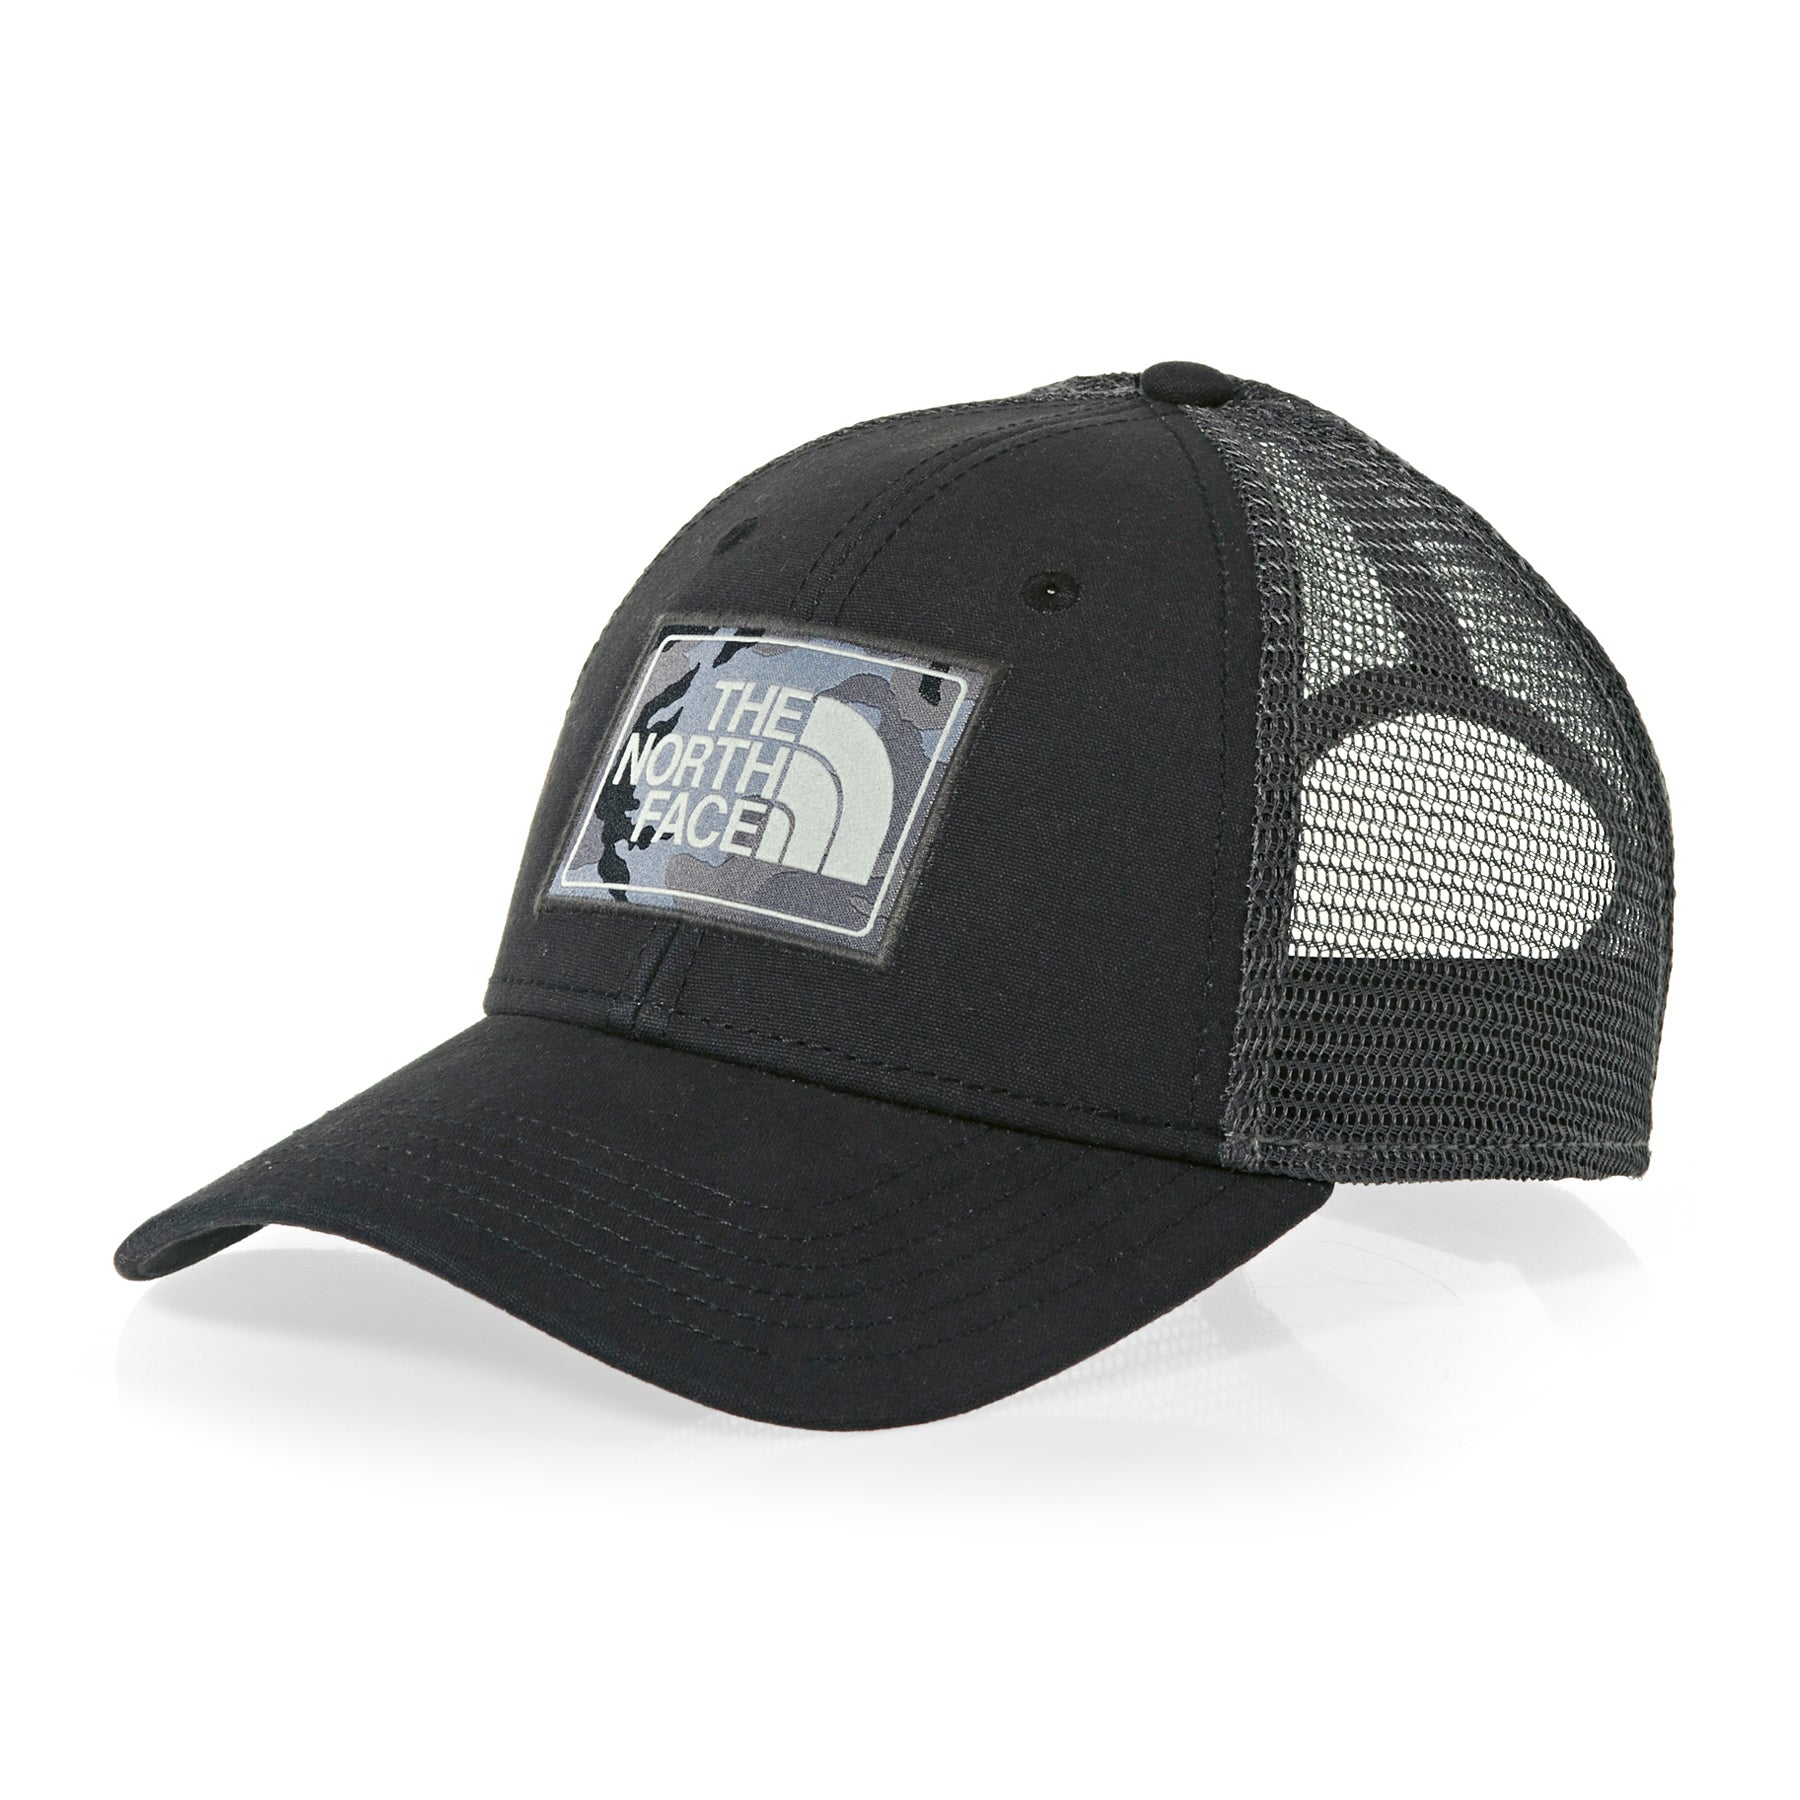 North Face Mudder Trucker Cap - TNF Black Asphalt Grey Camo